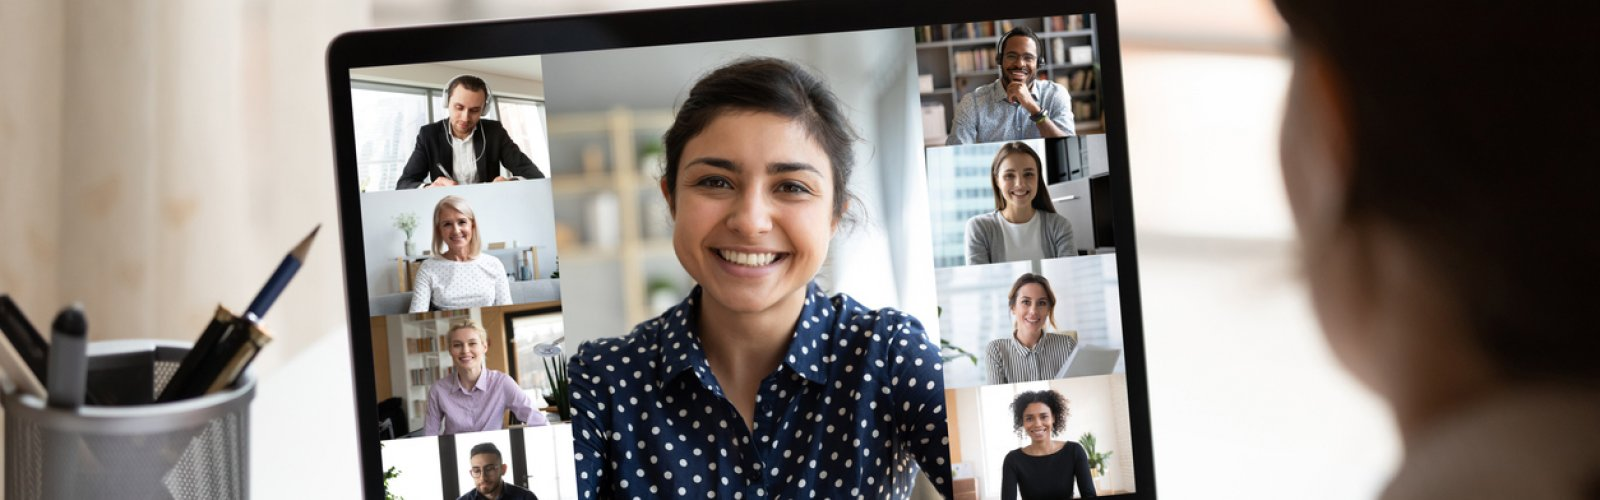 stock photo of a virtual meeting